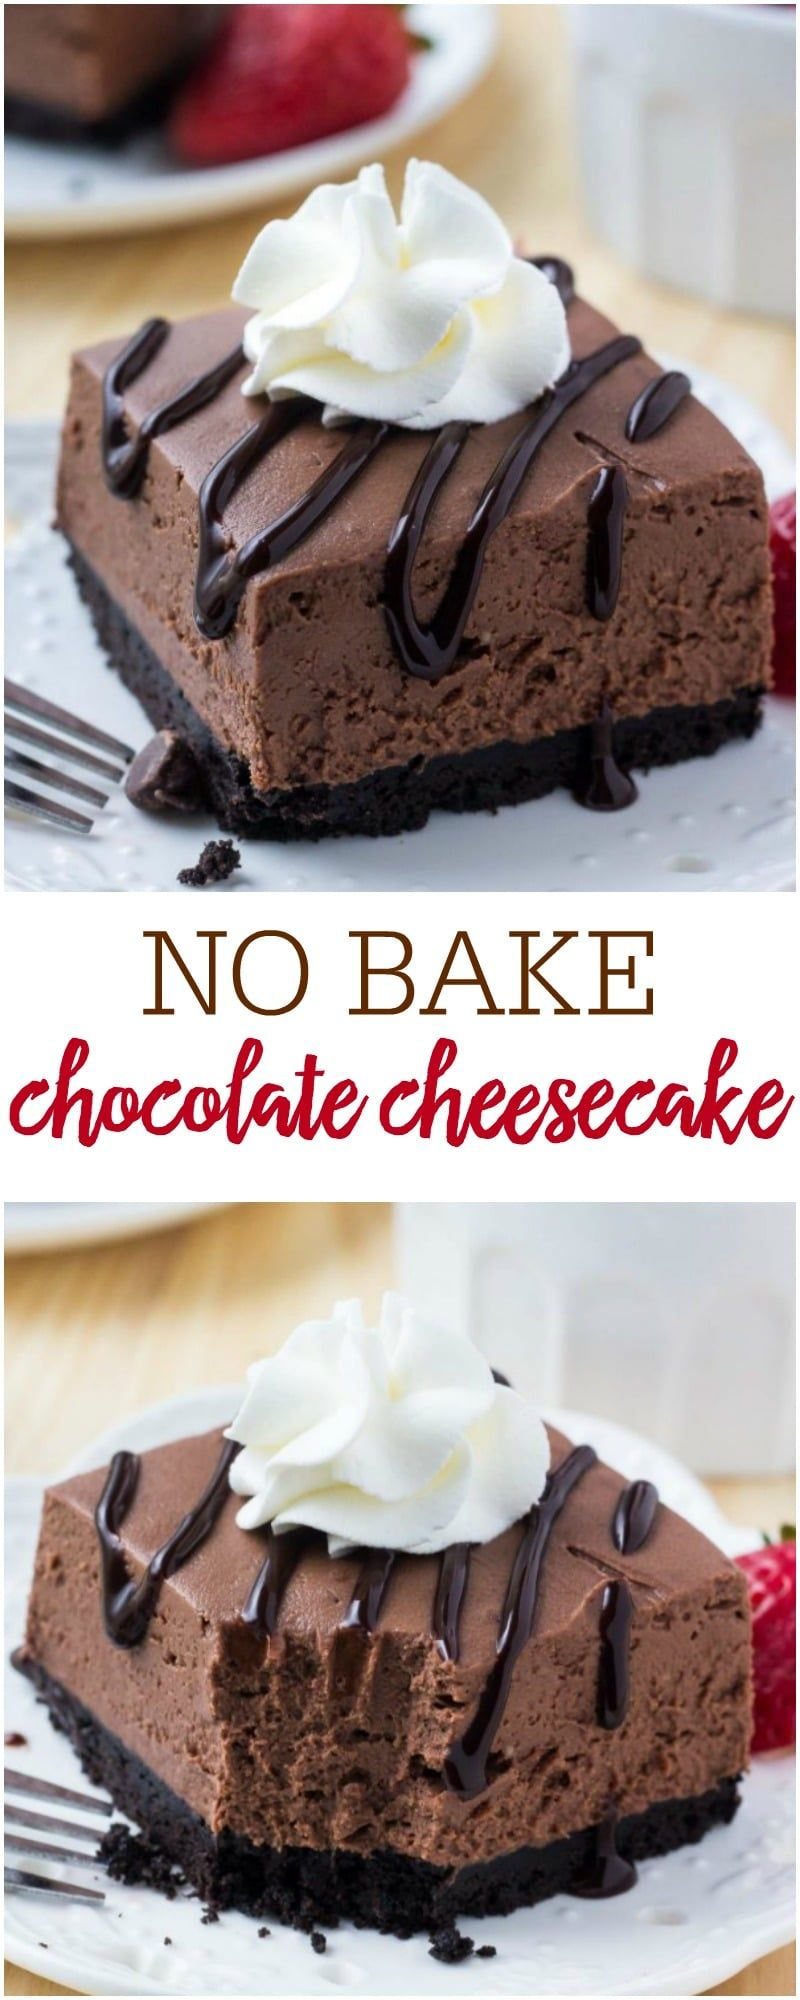 Photo of No Bake Chocolate Cheesecake {Simple & Delicious} | Lil' Luna